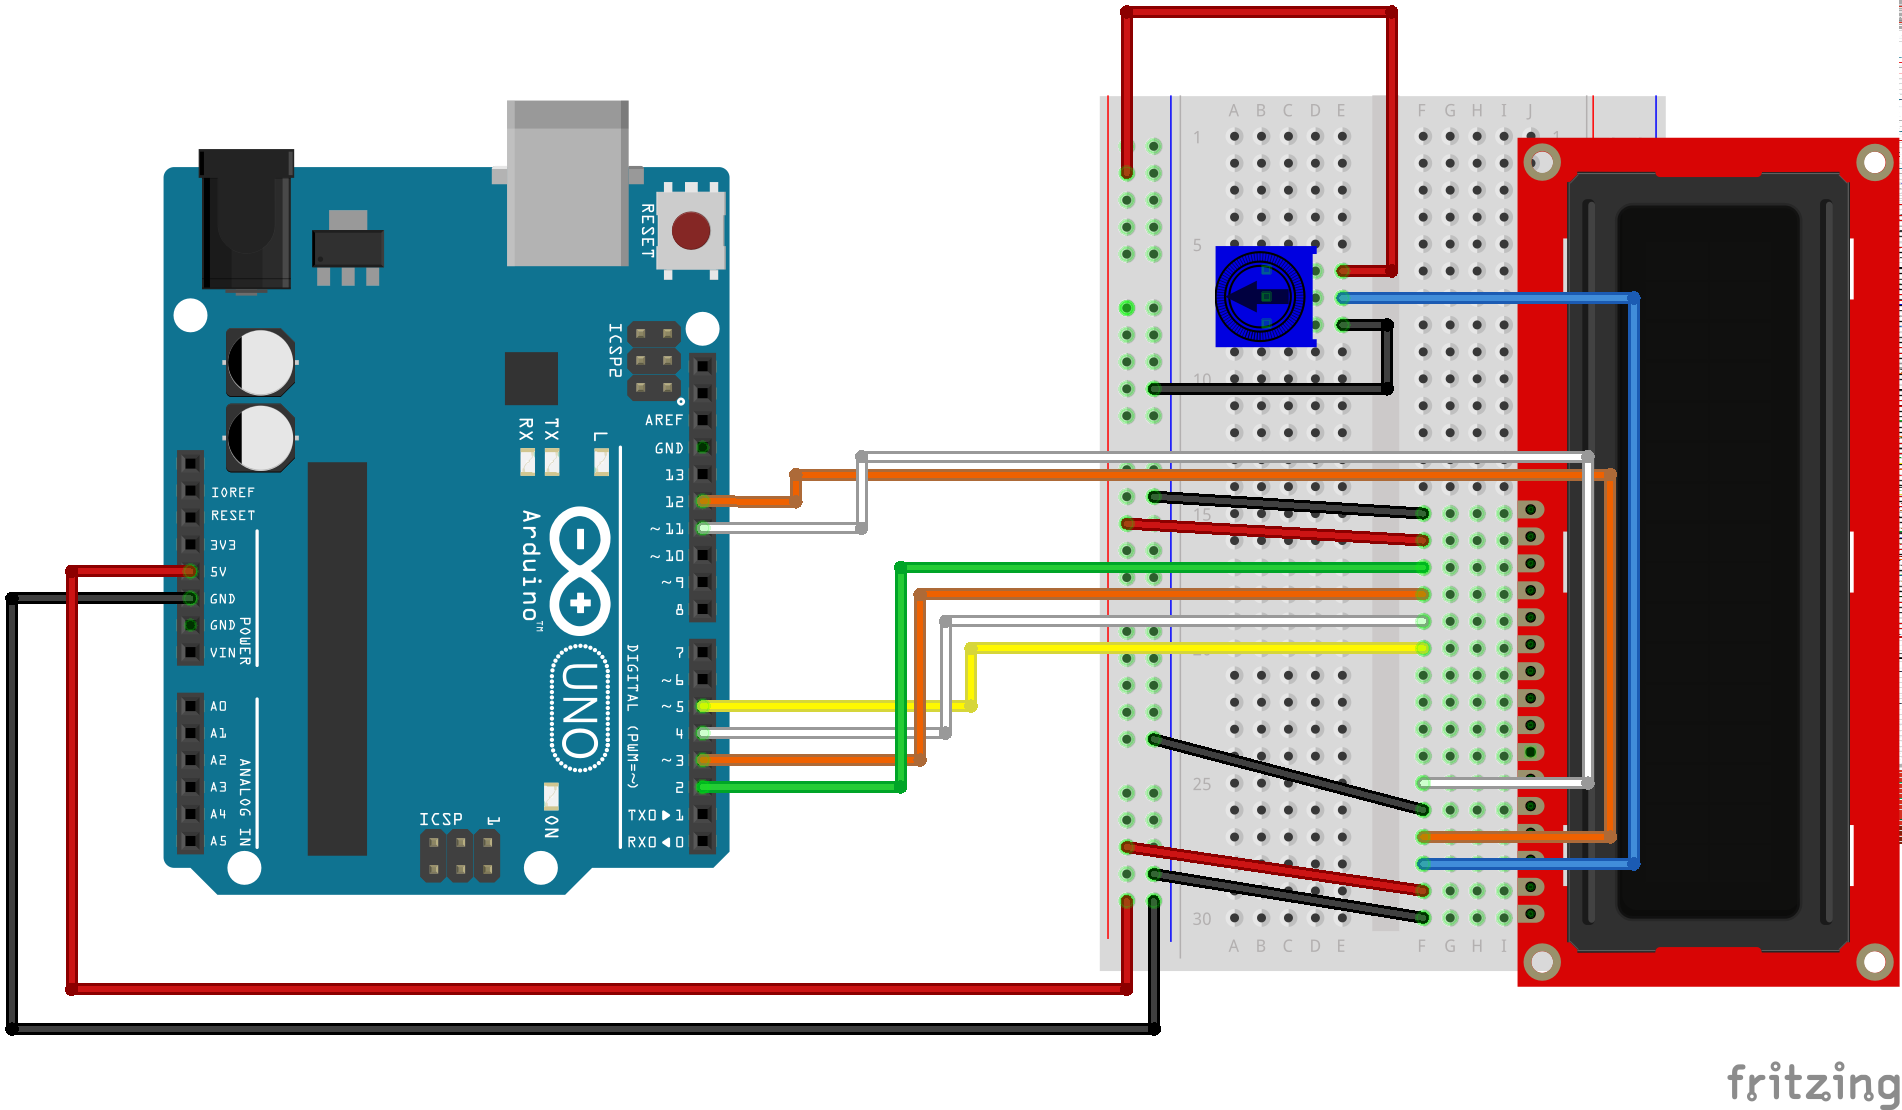 Fritzing Diagram for Arduino. alt text